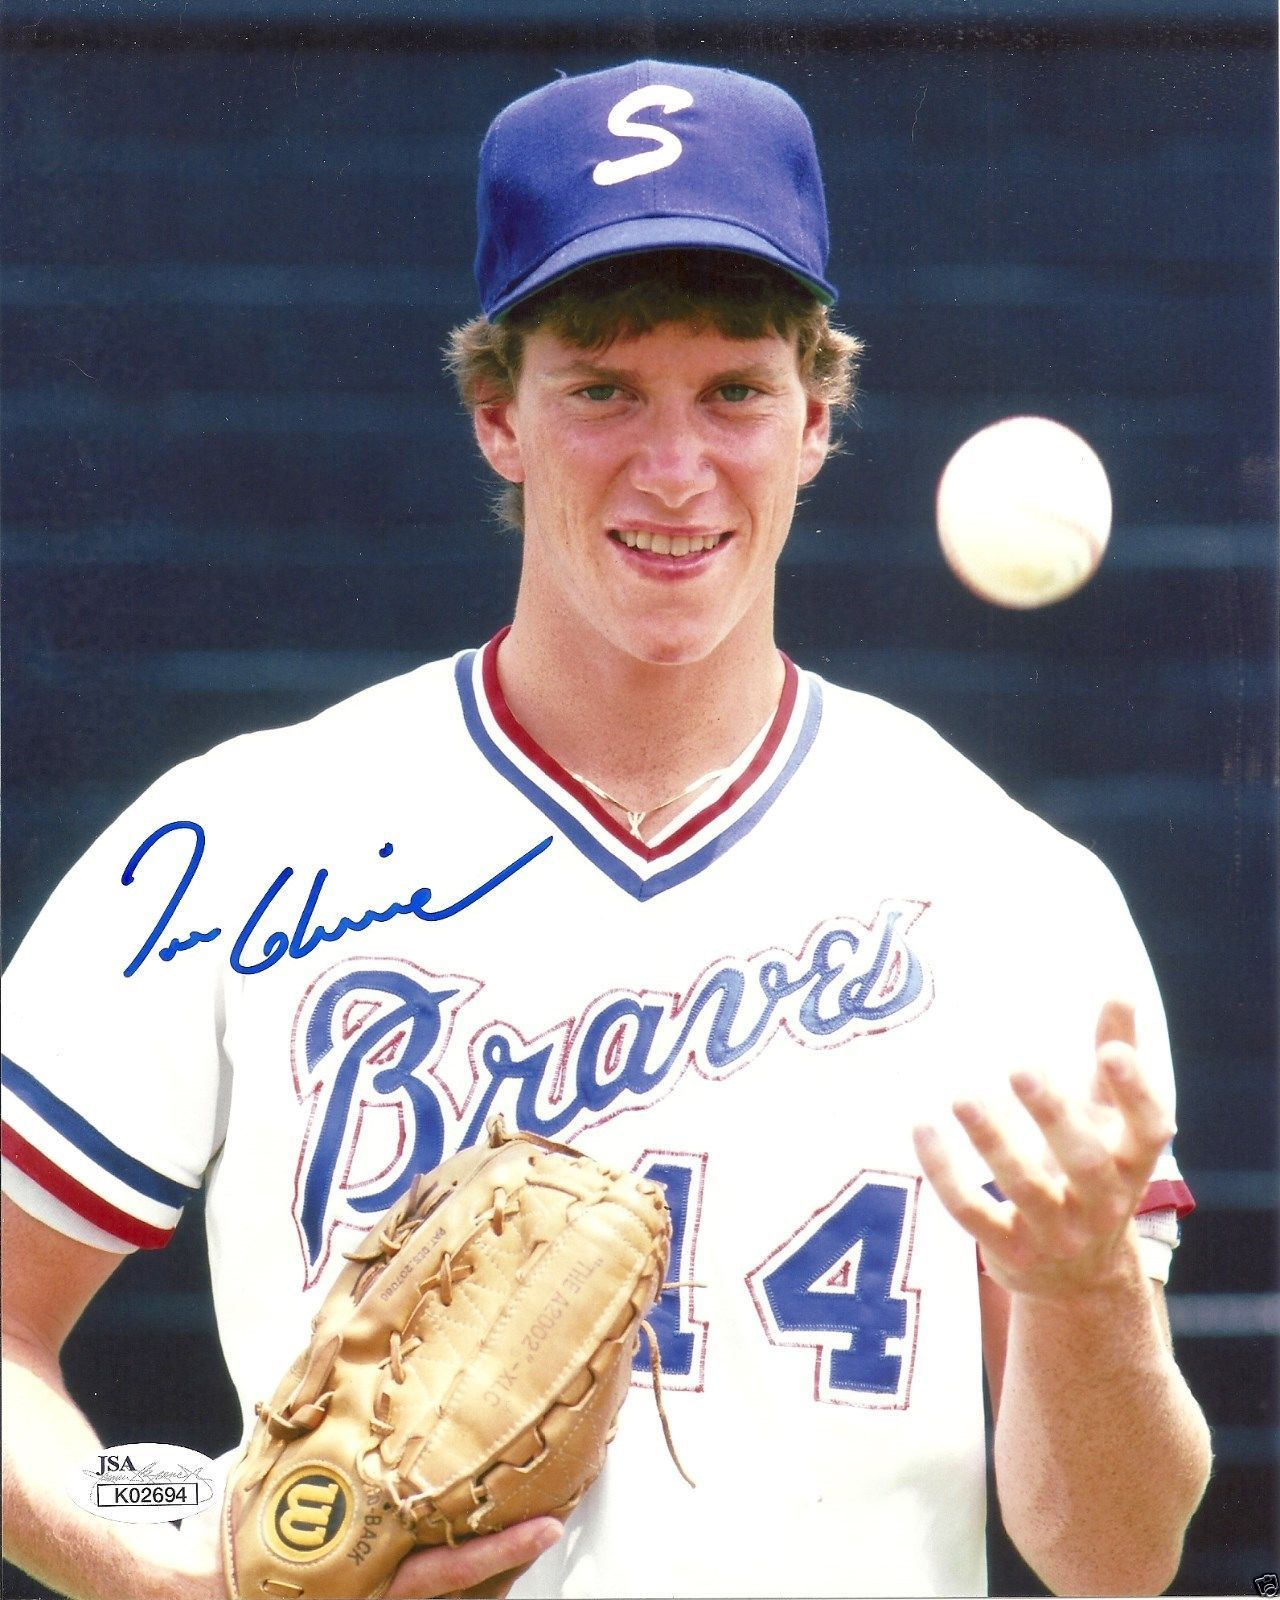 Tom Glavine Of The Atlanta Braves In 1985 Played At Riley Park A Minor League The Sumter Braves Tom Glavine Atlanta Braves Braves